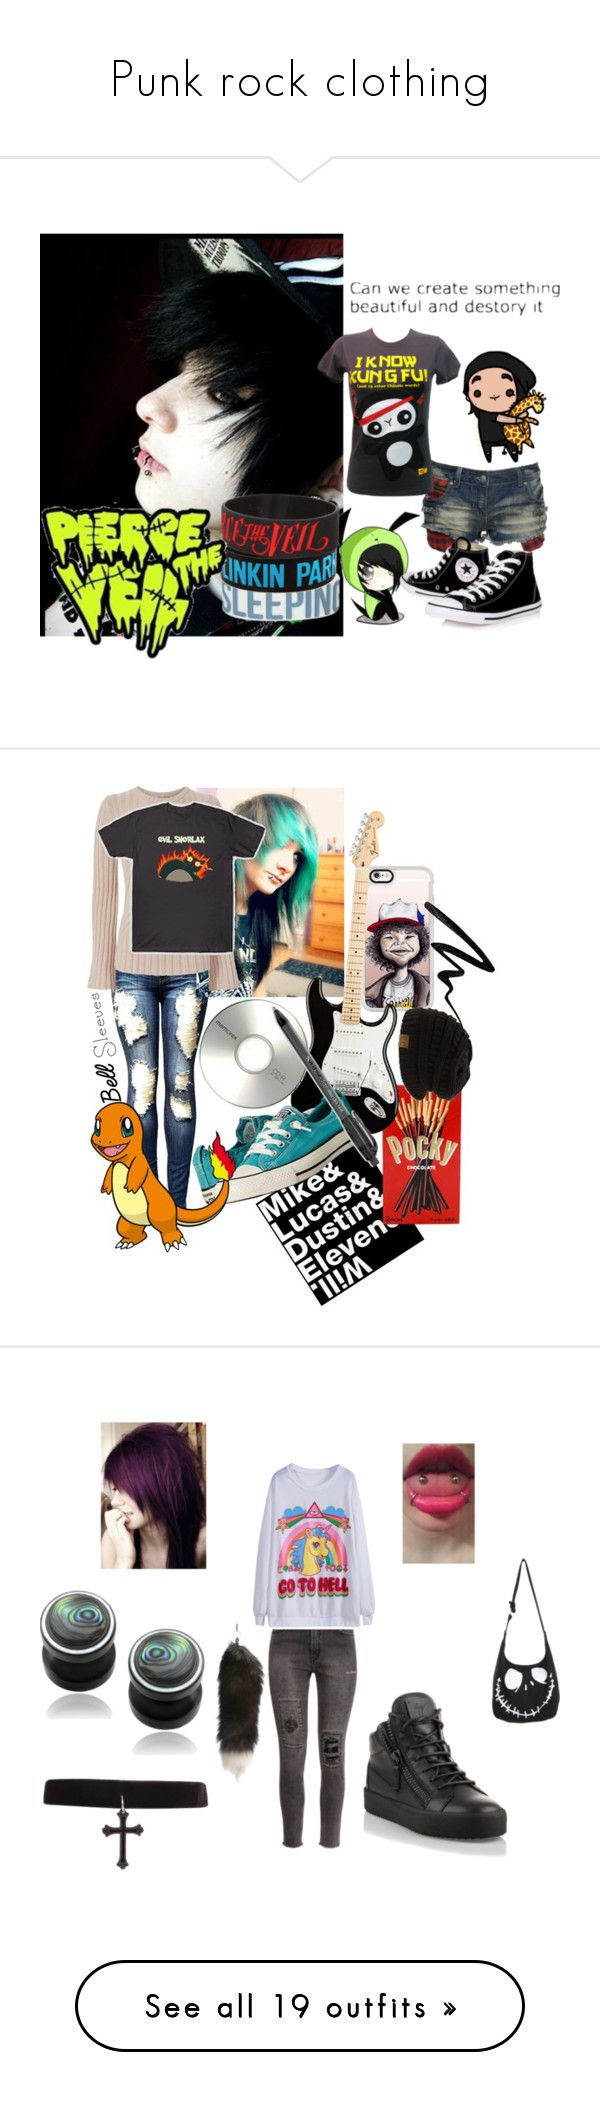 """""""Punk rock clothing"""" by msmshoi ❤ liked on Polyvore featuring Crafted, Panda, Converse, Autumn Cashmere, Casetify, Memorex, Paper Mate, Eyeko, H&M and Giuseppe Zanotti"""